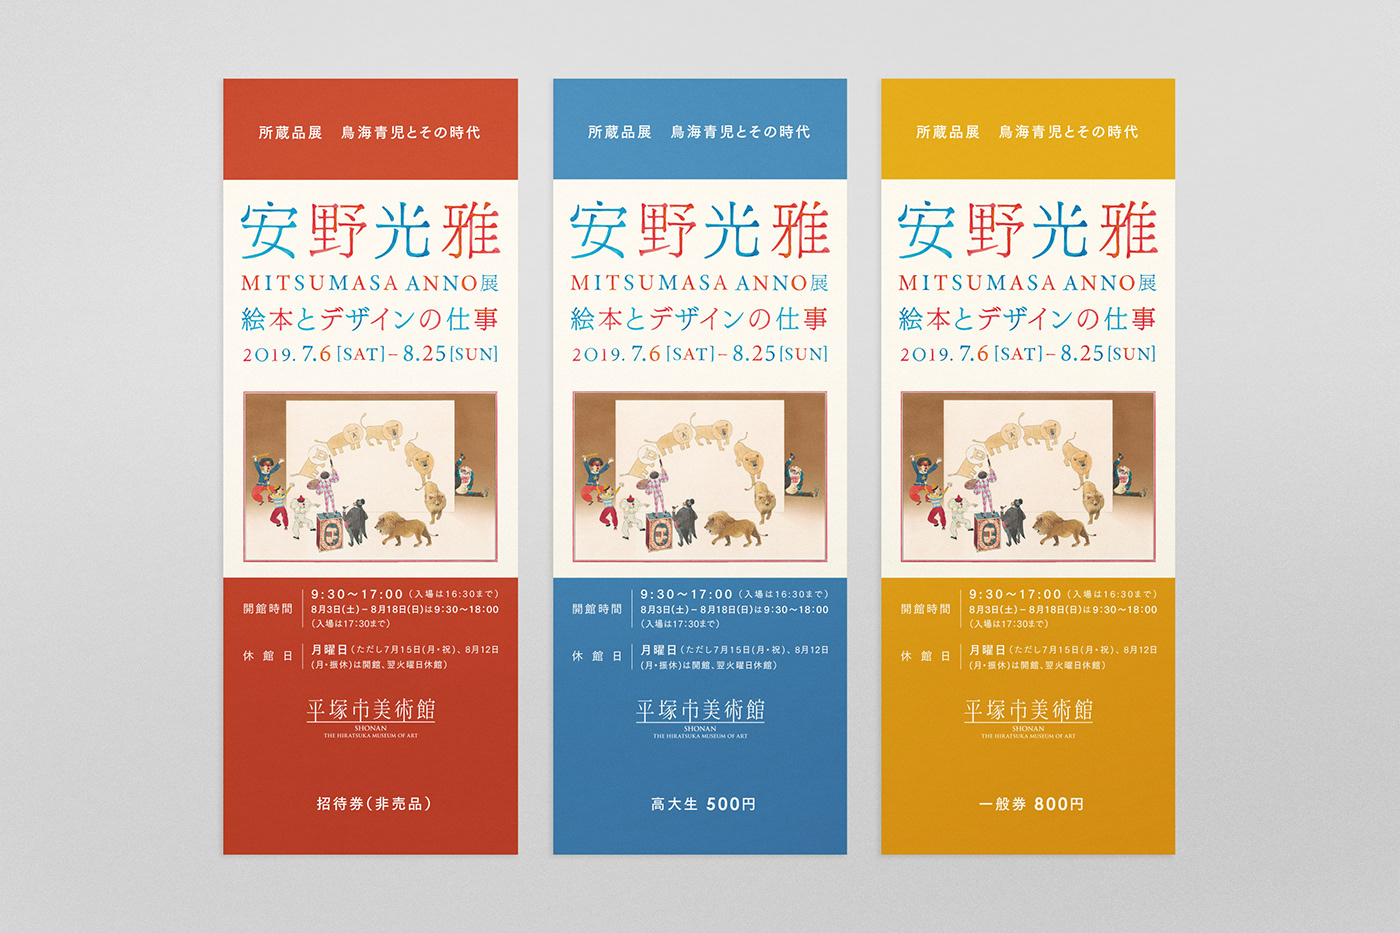 art blue Exhibition  museum Picture book red typography   lettering 絵本